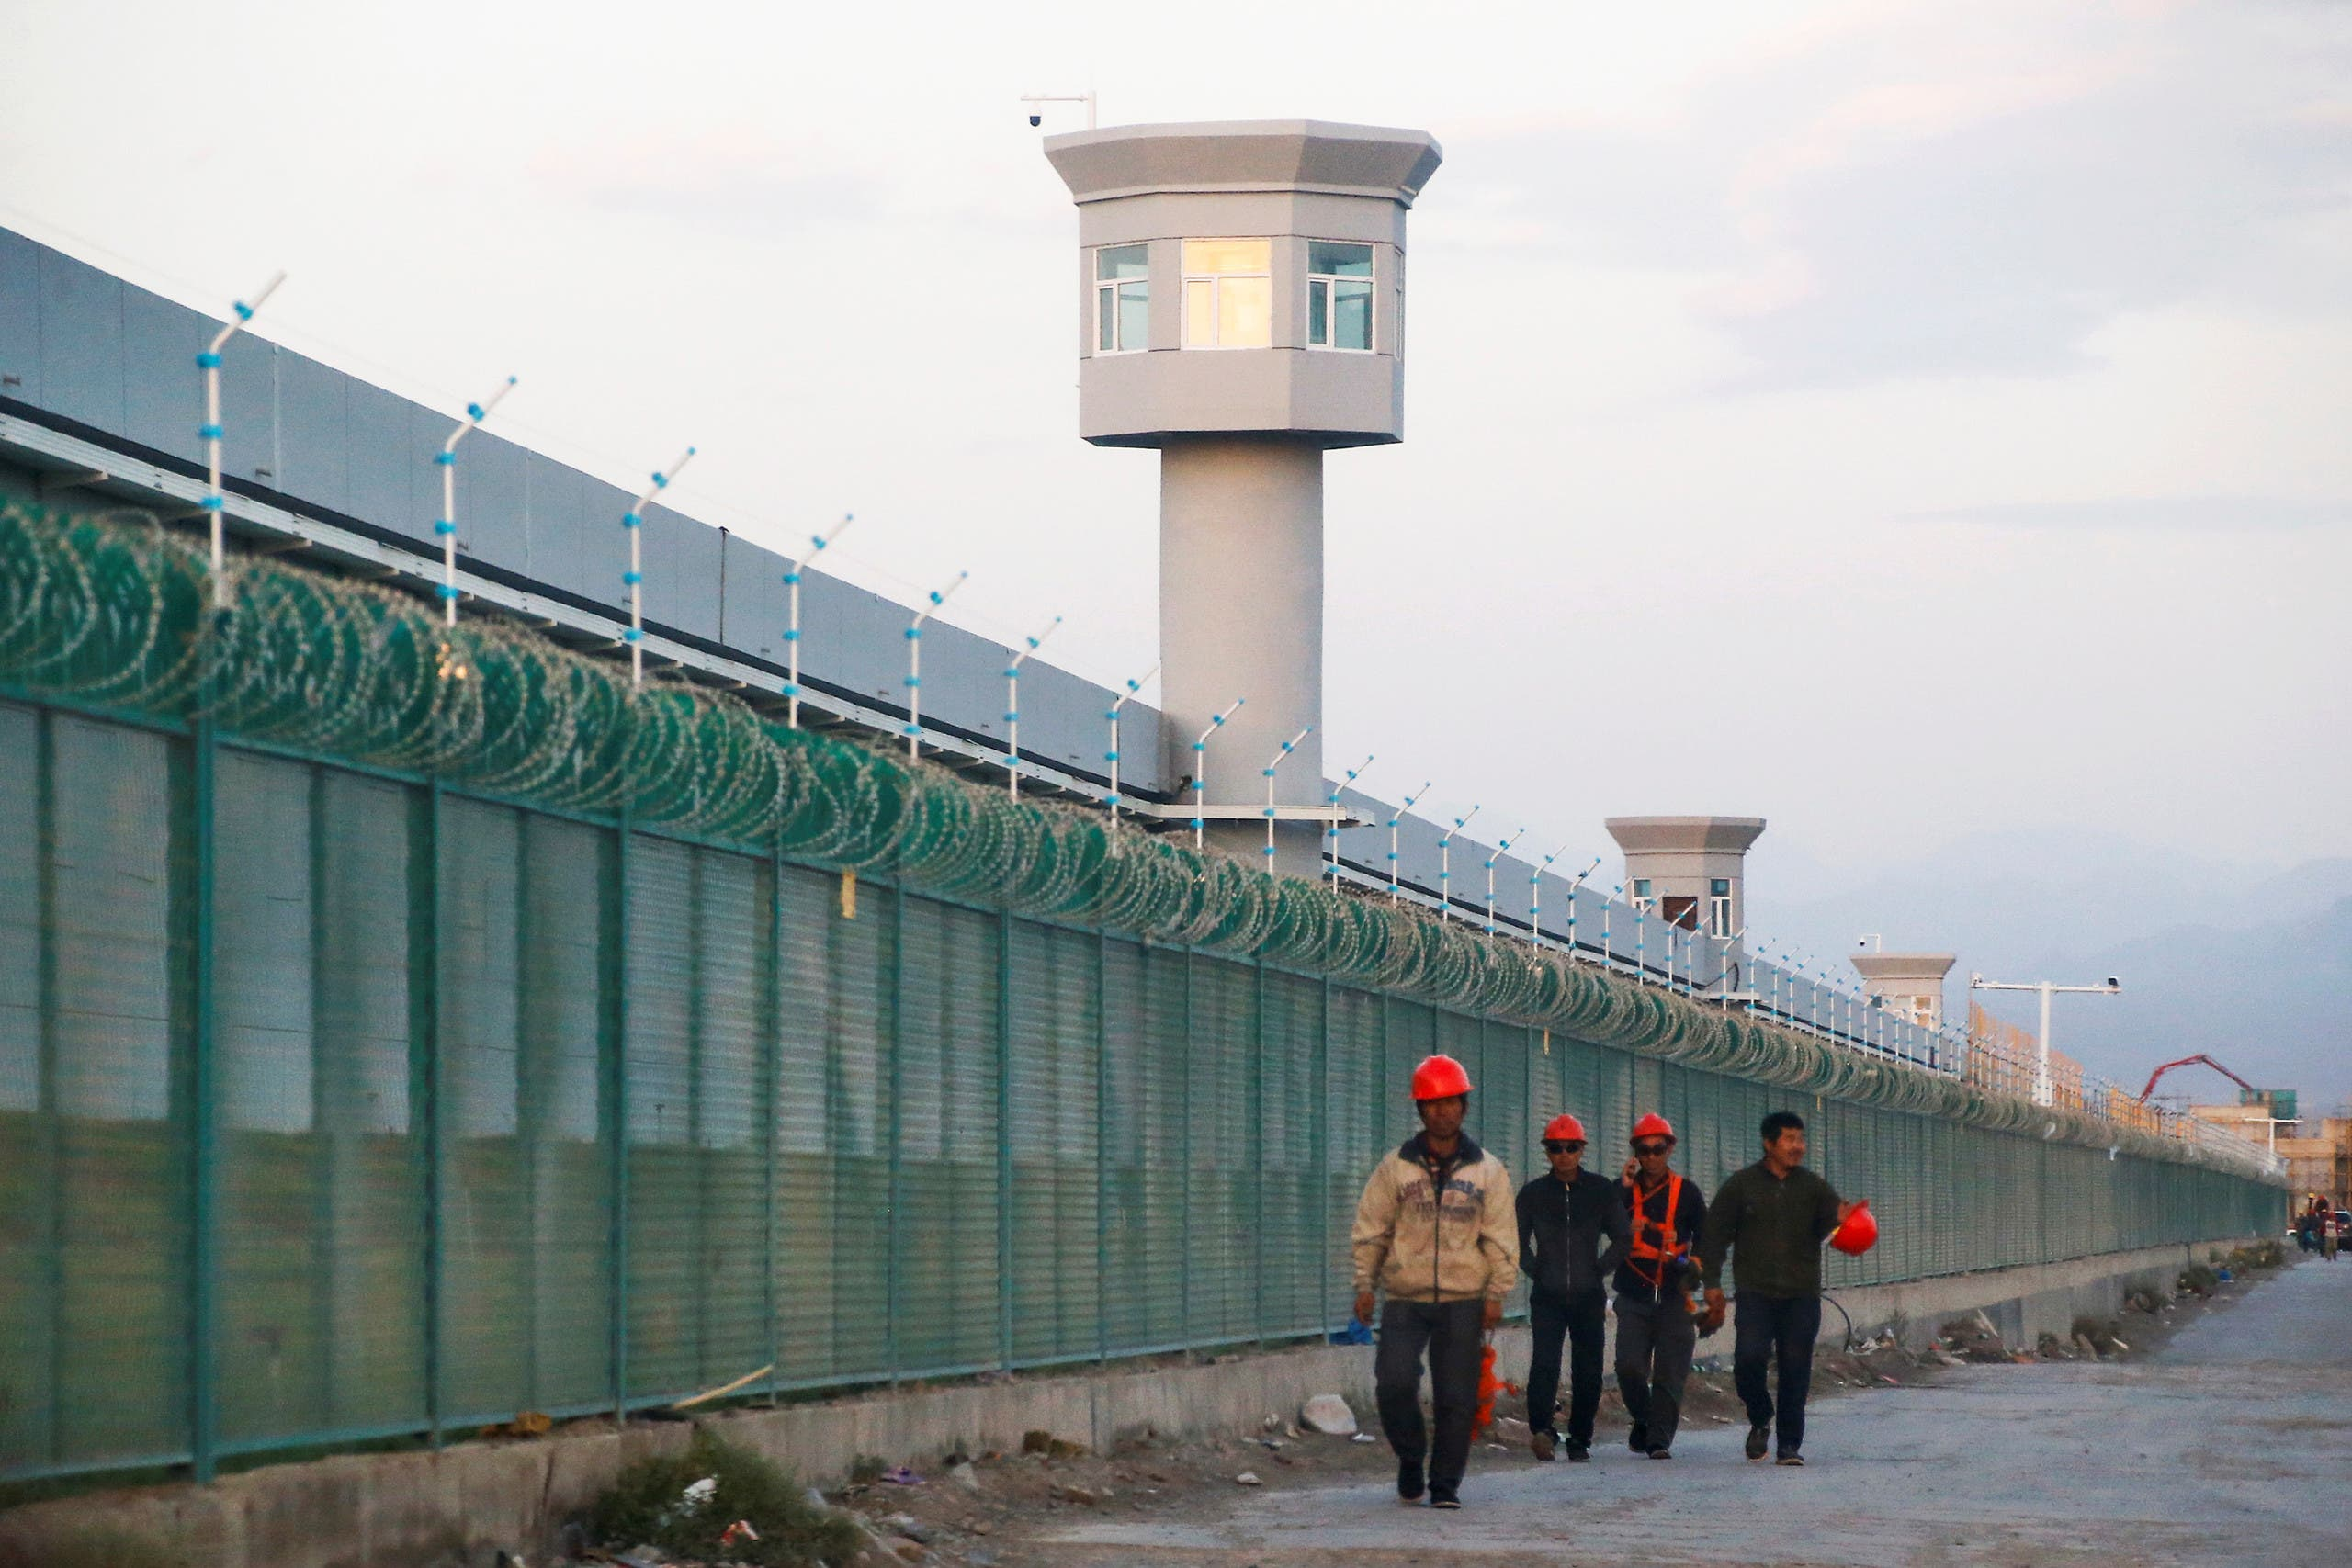 Workers walk by the perimeter fence of what is officially known as a vocational skills education center in Xinjiang Uighur Autonomous Region, China on September 4, 2018. (AP)